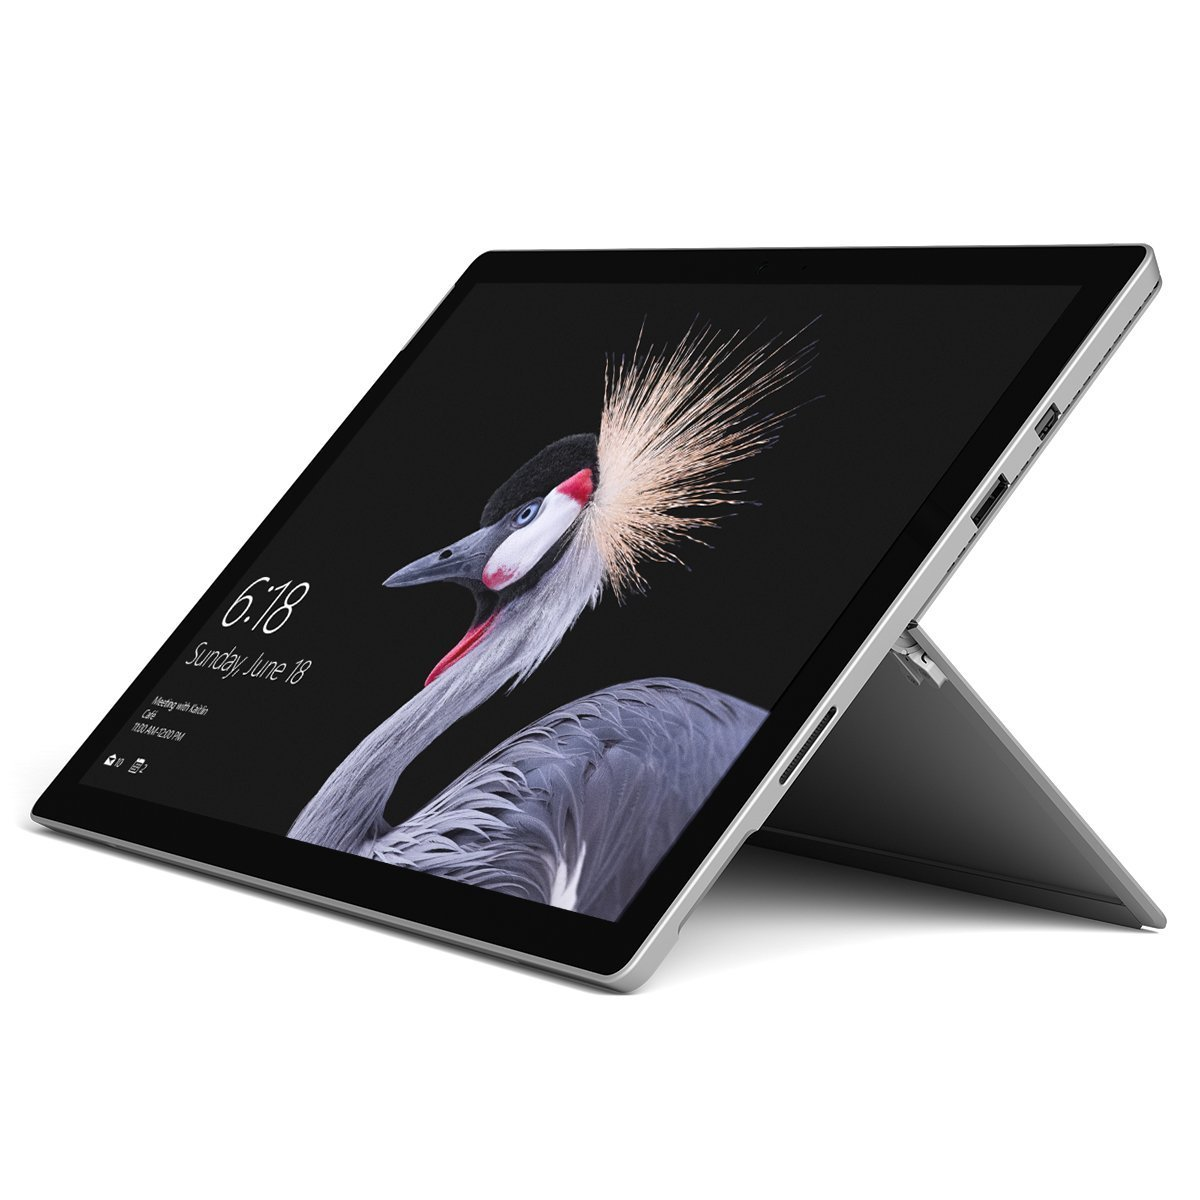 Image of Microsoft Surface Pro (2017) i7 512GB 16GB Ram FKJ-00001 [without Keyboard]